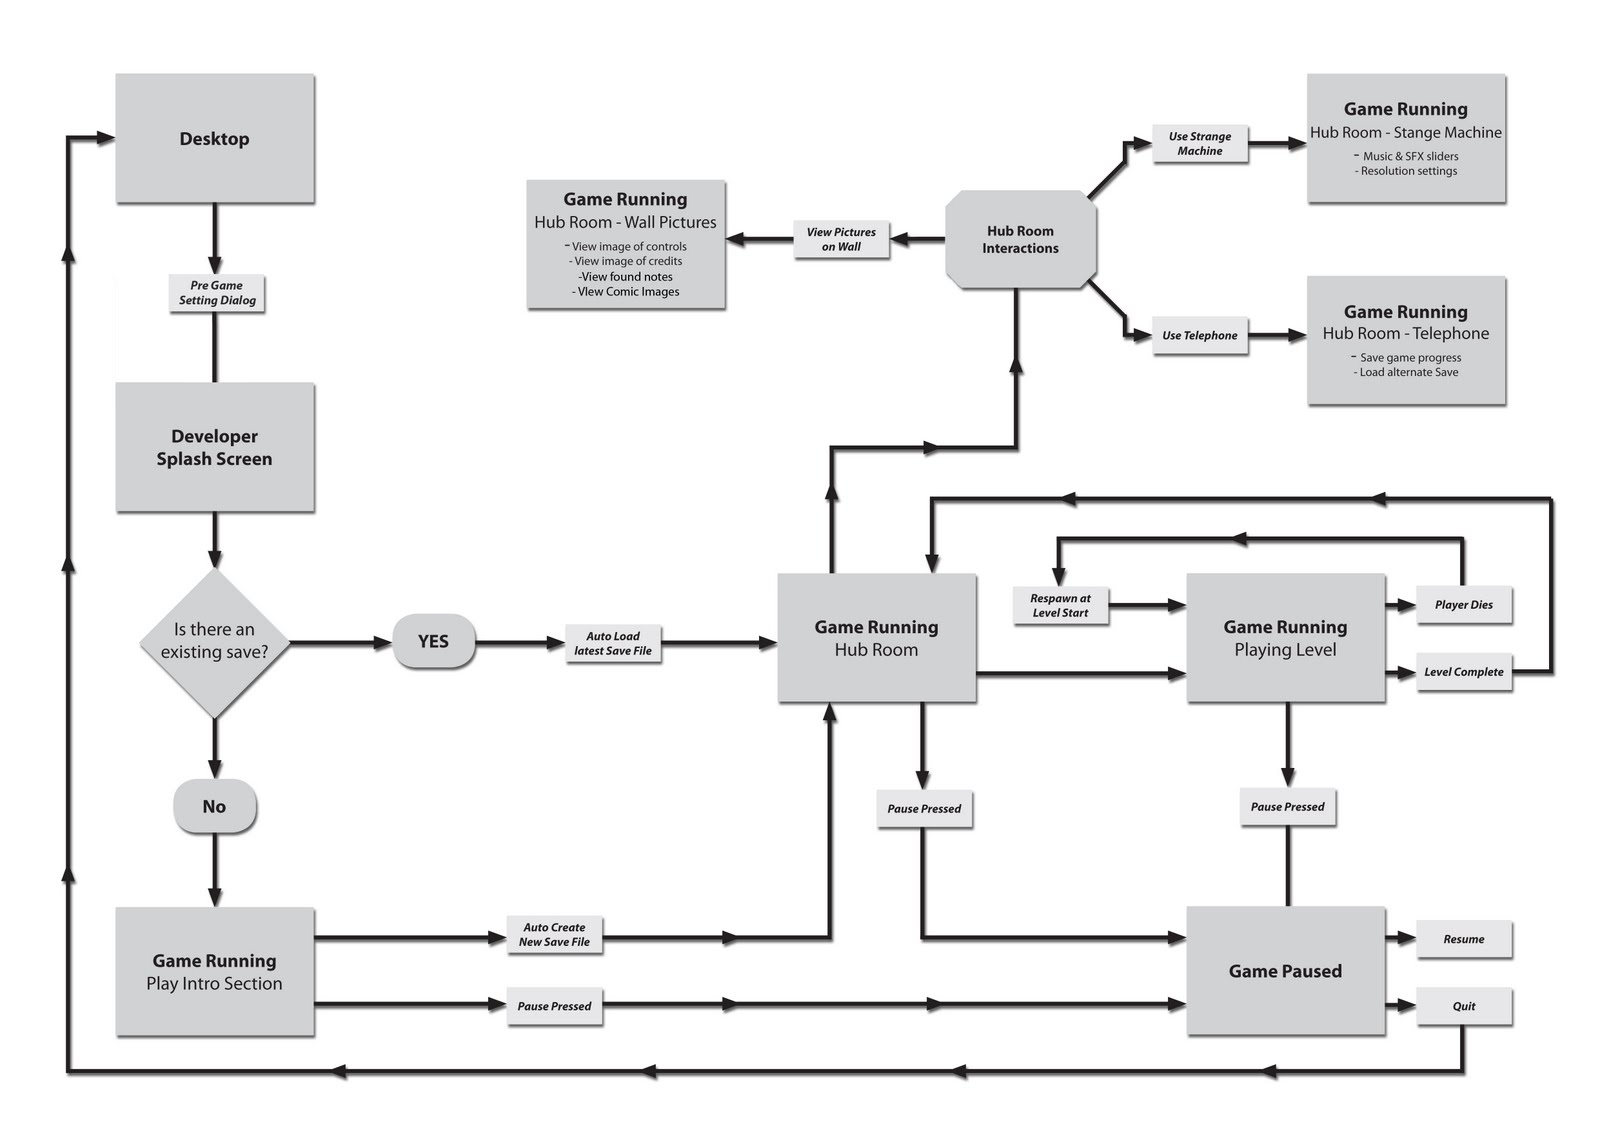 Barryhevans game design blog start menu flow chart v3 nvjuhfo Image collections